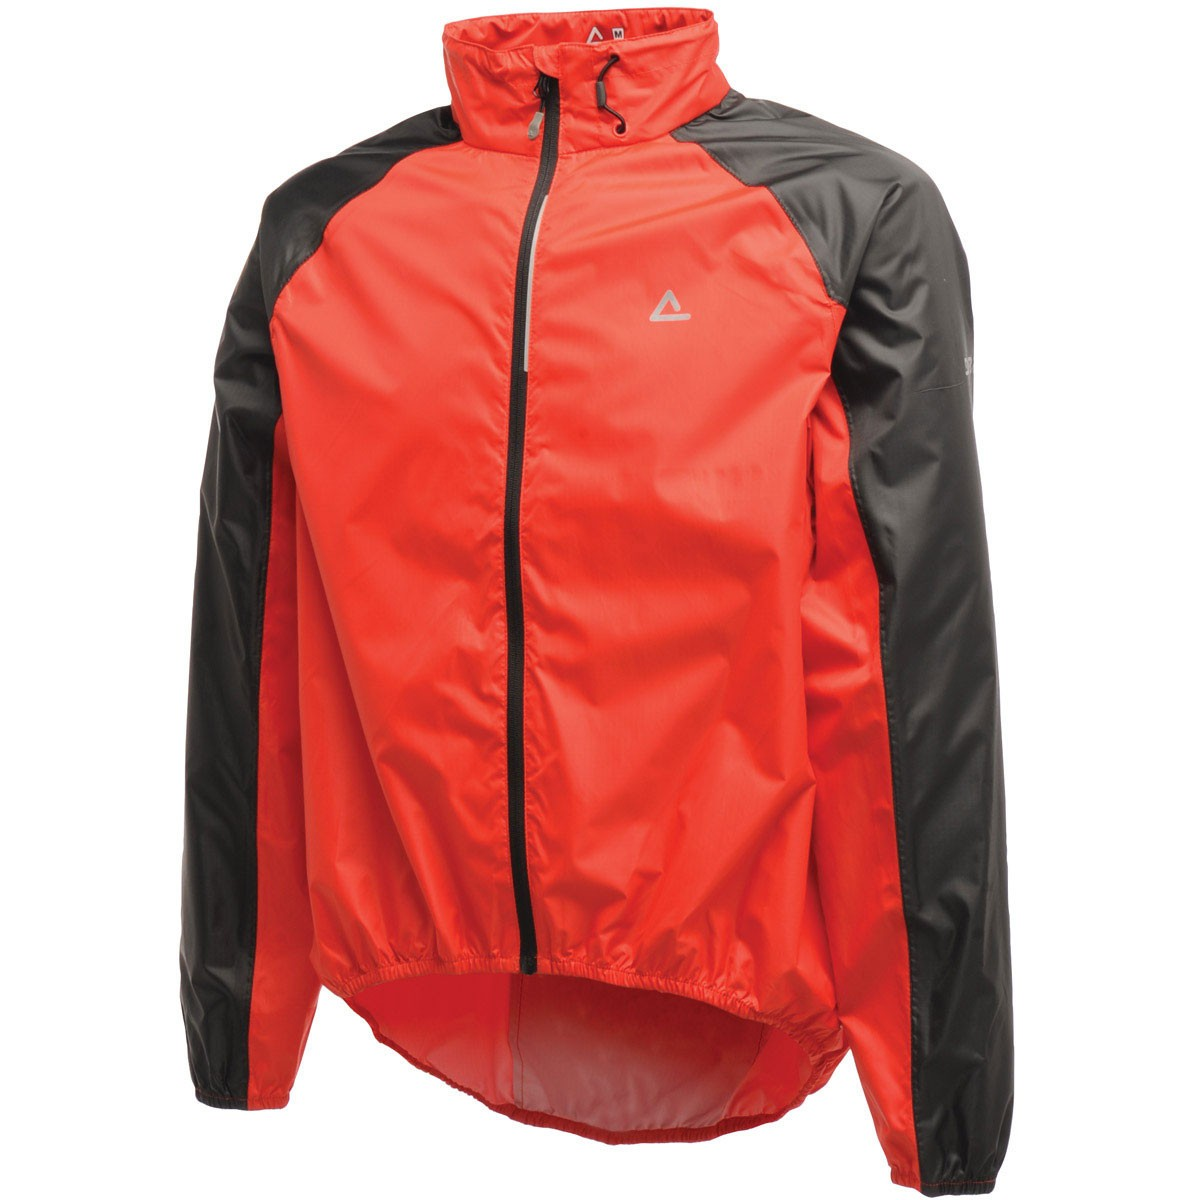 2b mens dynamize waterproof jacket waterproofs